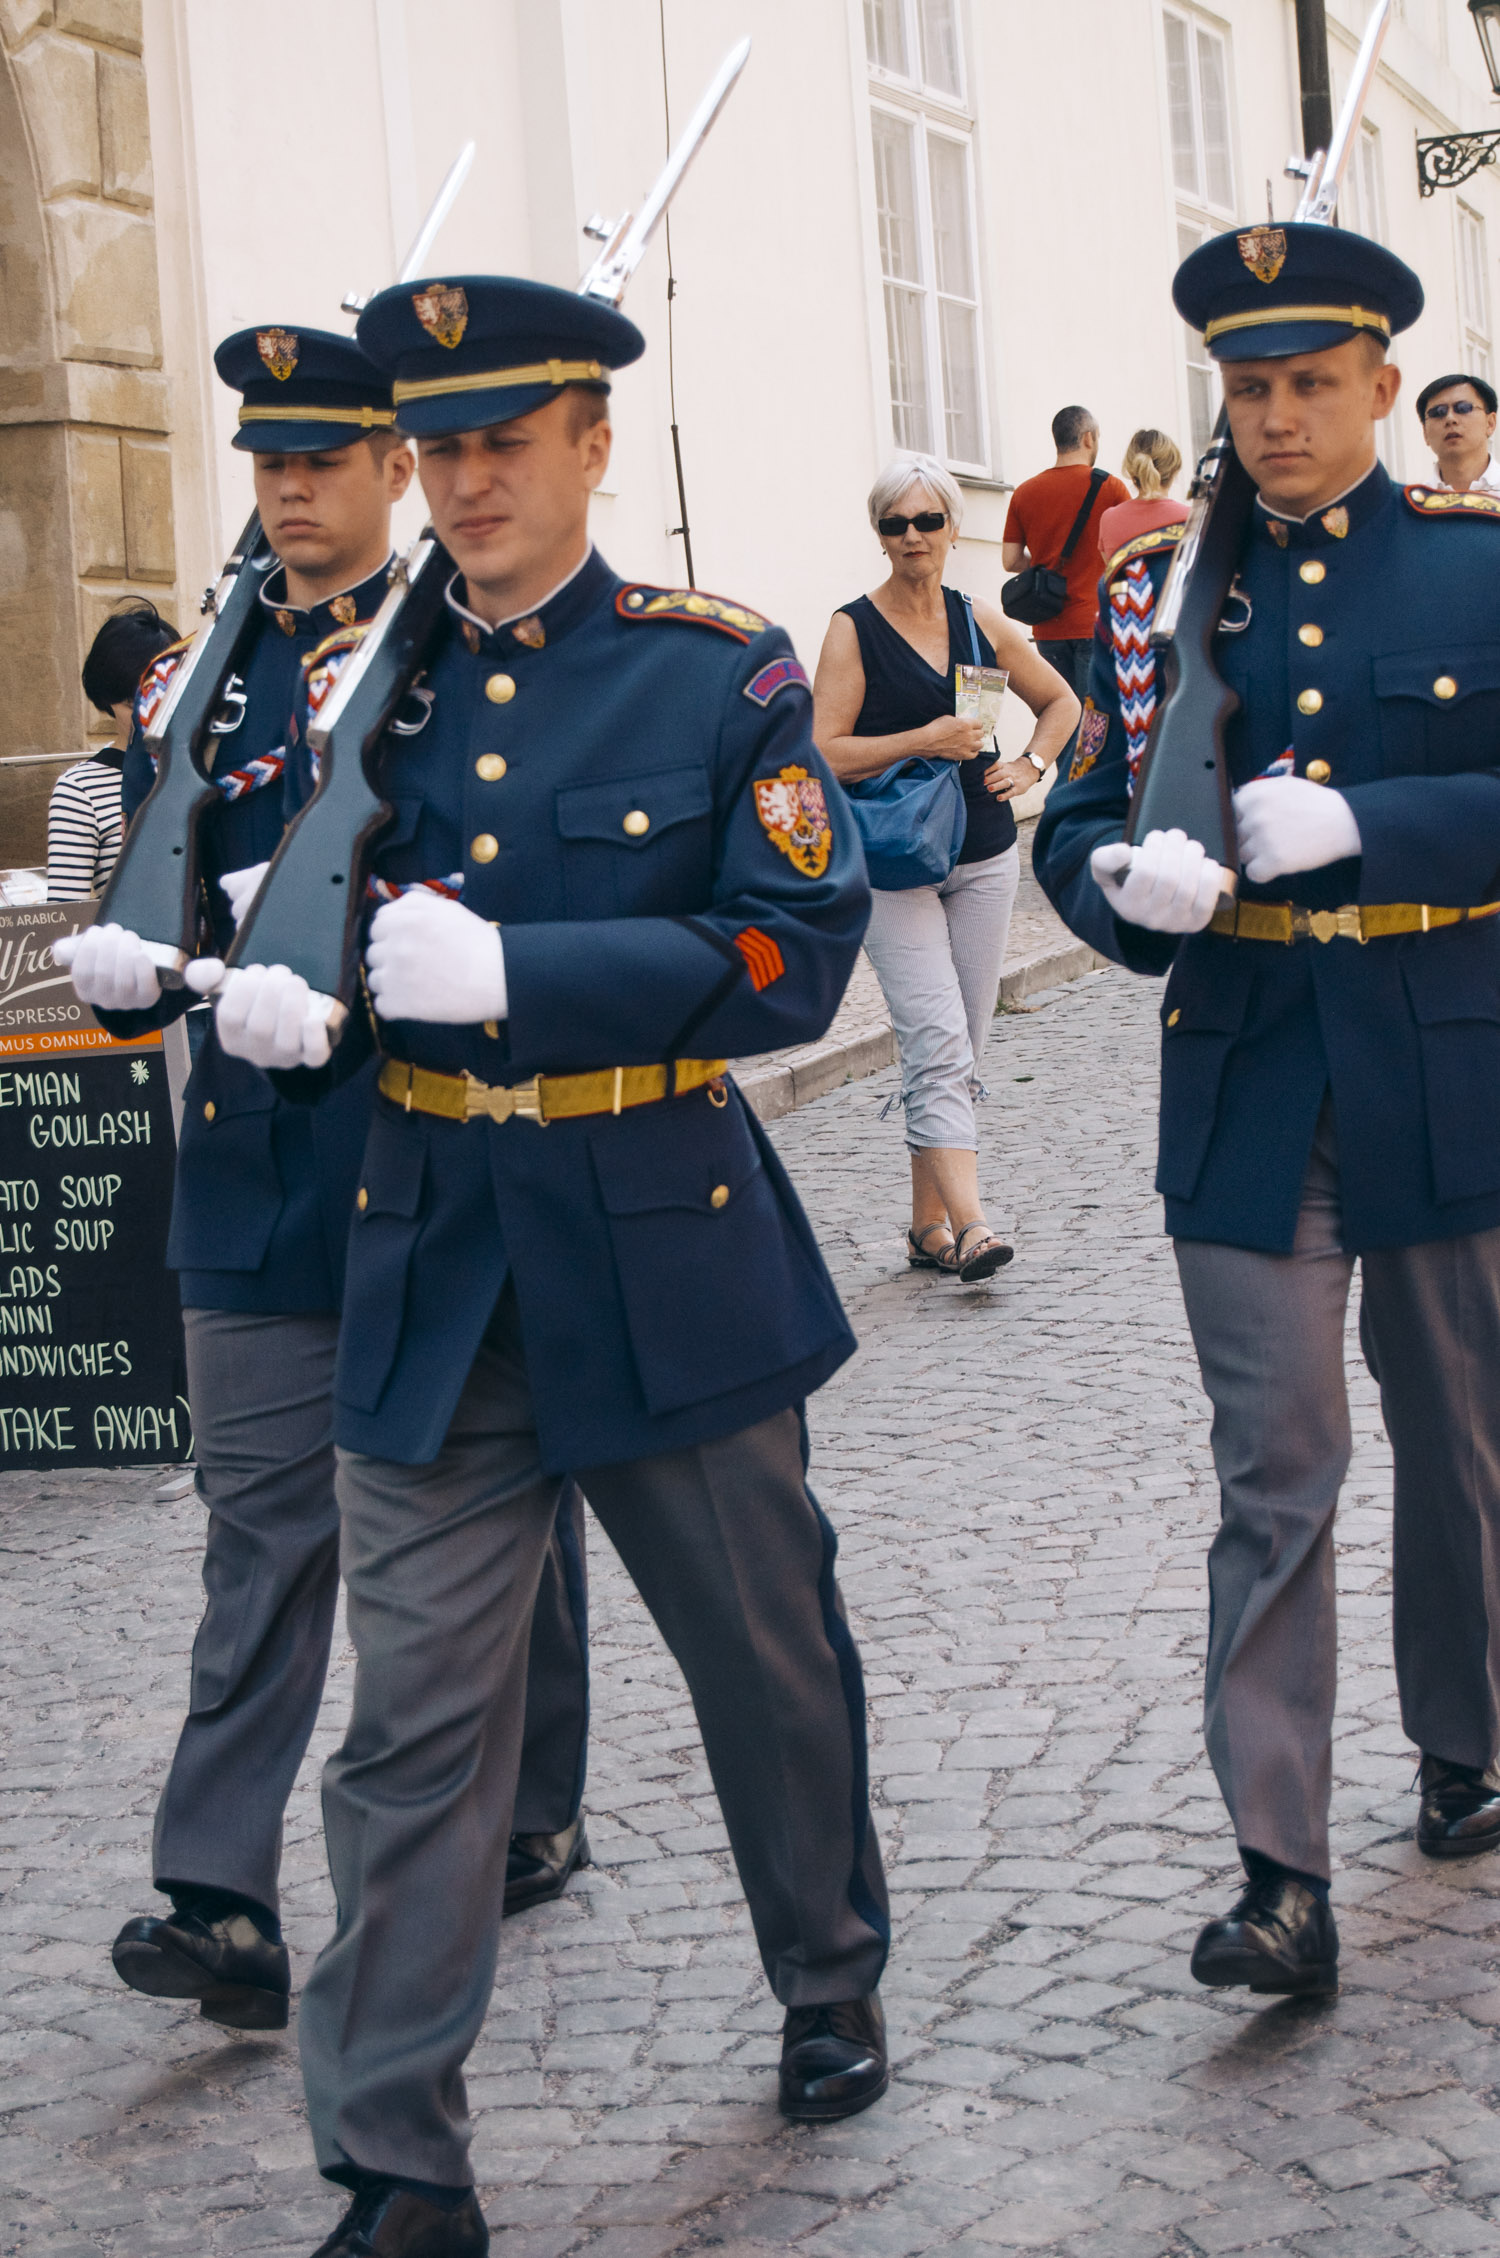 A day of a Castle Guard soldier: - Every Castle Guard soldier gets up at 6 am. Then there is his/her common job – the guards perform order-drill, defence training and shooting practice and all this conclude with a 24-hour duty. The duty includes an hour stand-up, then service at the guard room, and a rest which can be followed by sleep.